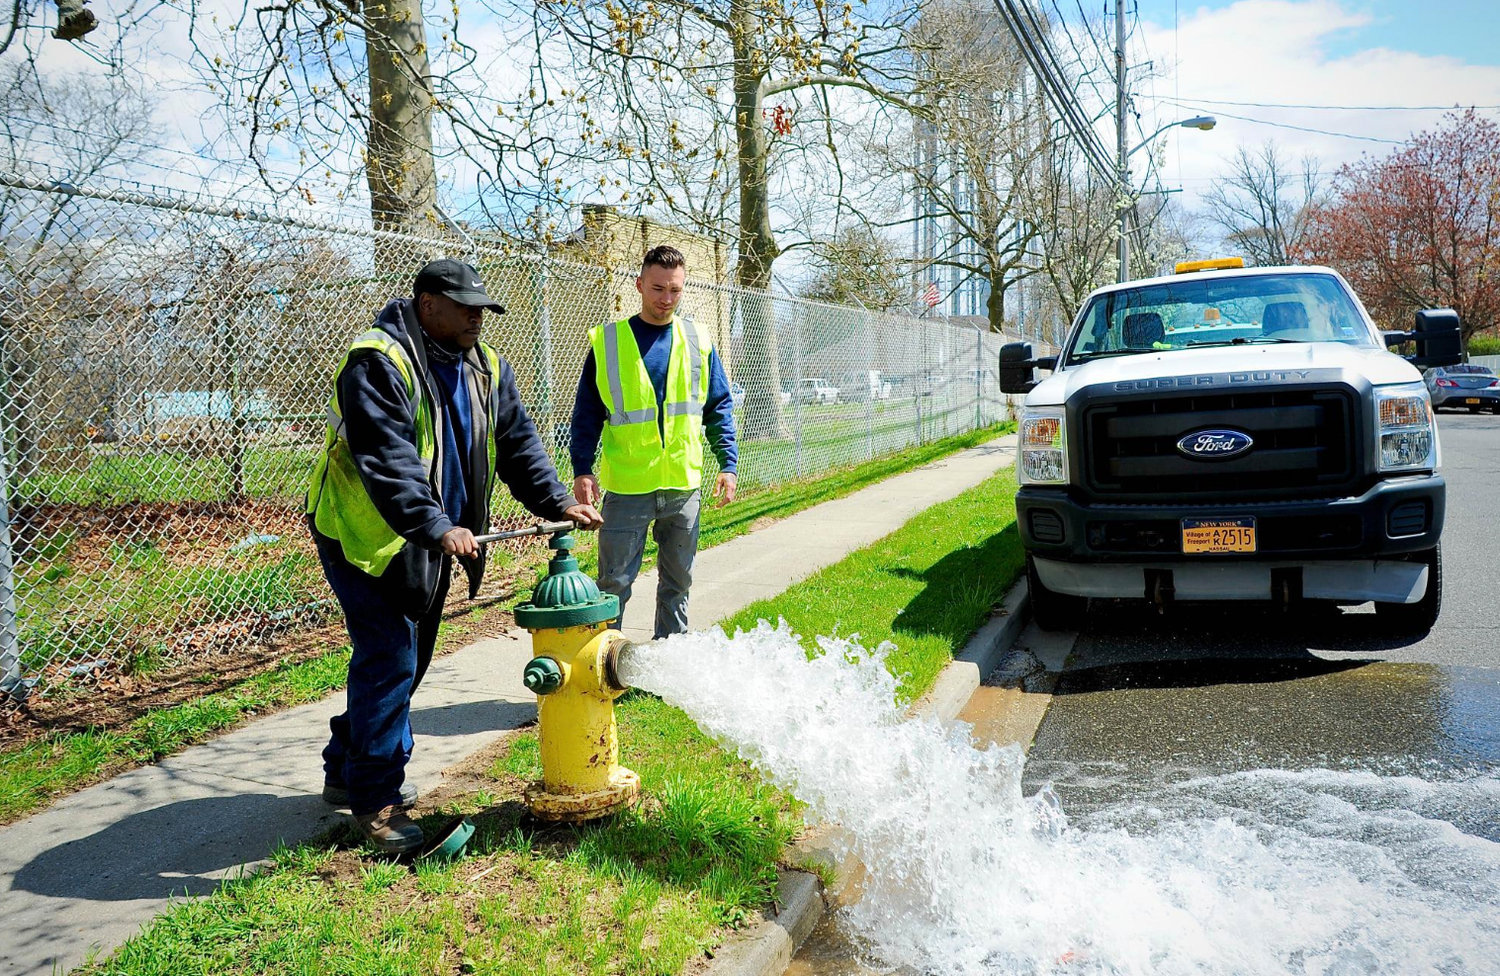 Freeport Water Department employees will be opening hydrants north of Sunrise Highway from April 19 to April 26.